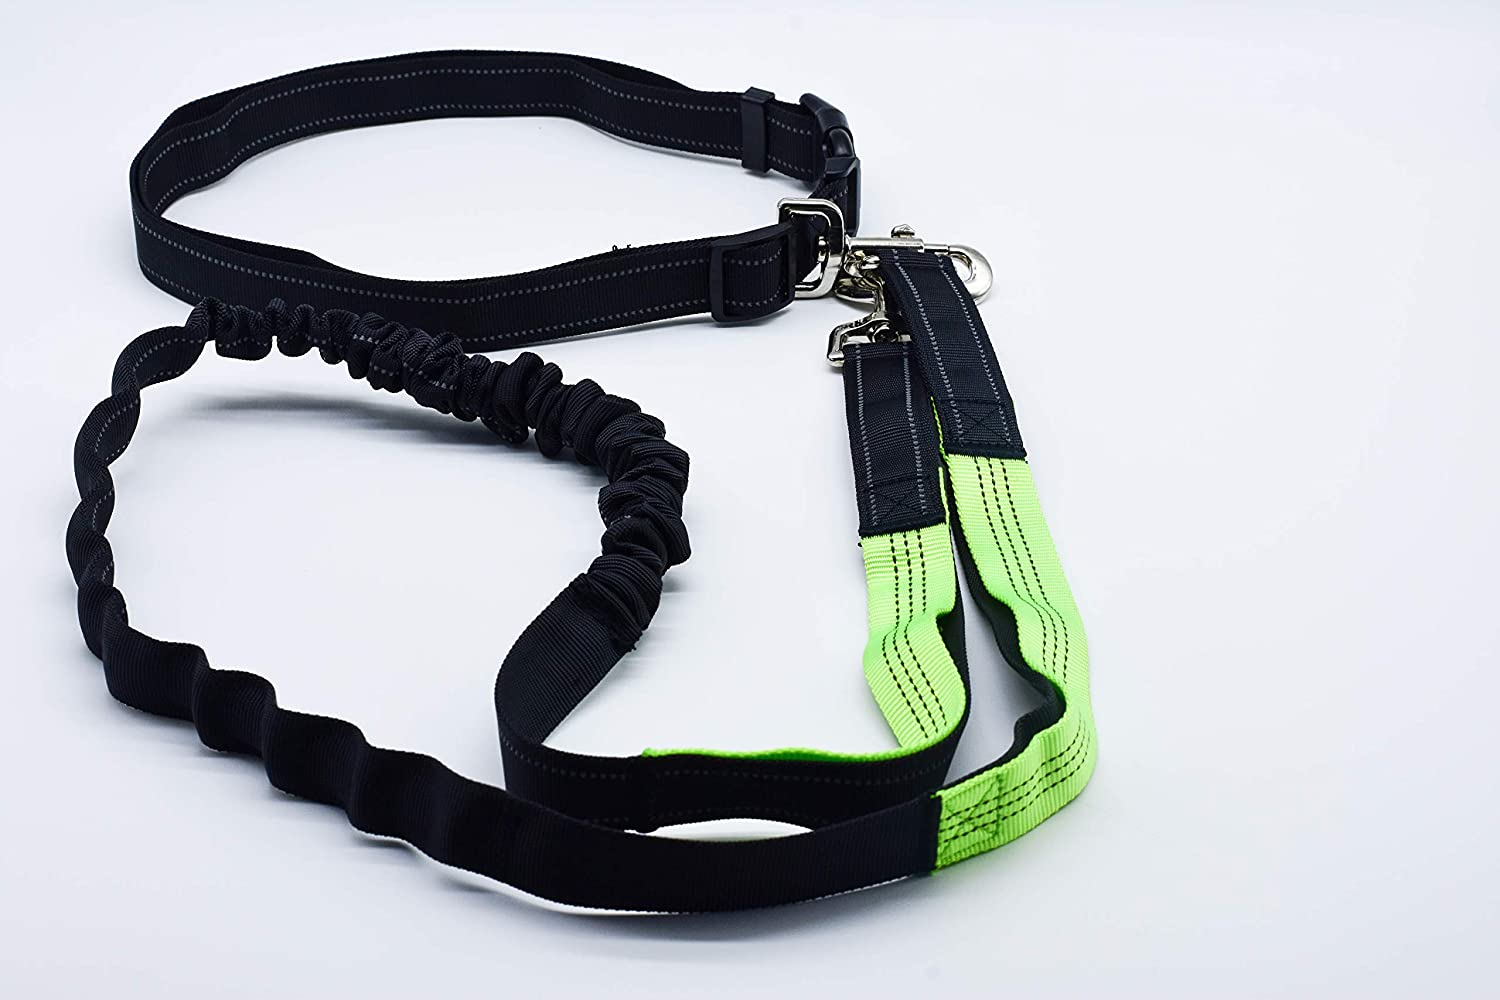 Hands Free Dog Leash Reflective Running Dog Leash with Double Handles,Strong Bungees /& Adjustable Waist Belt for Walking Jogging Hiking,Shock Absorbing Blue